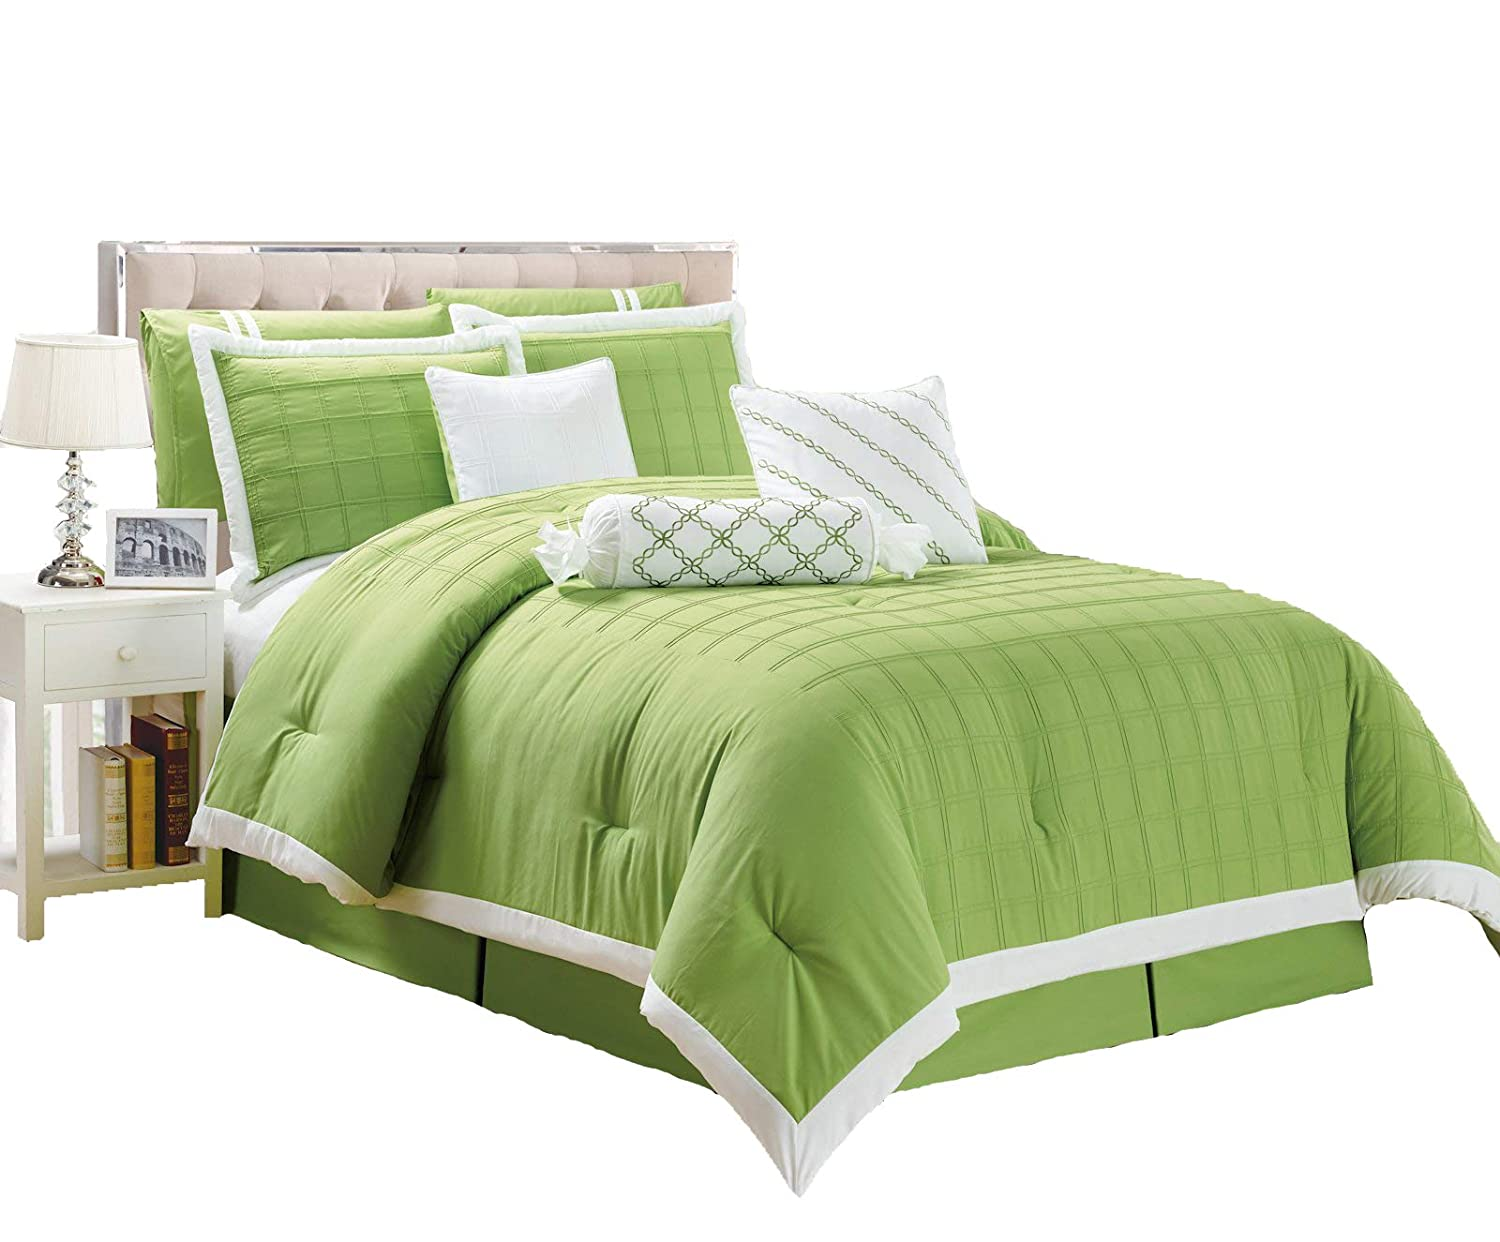 Legacy Decor 9 pc Lime Green and White Color, Pleated Microfiber Comforter  Set, Queen Size